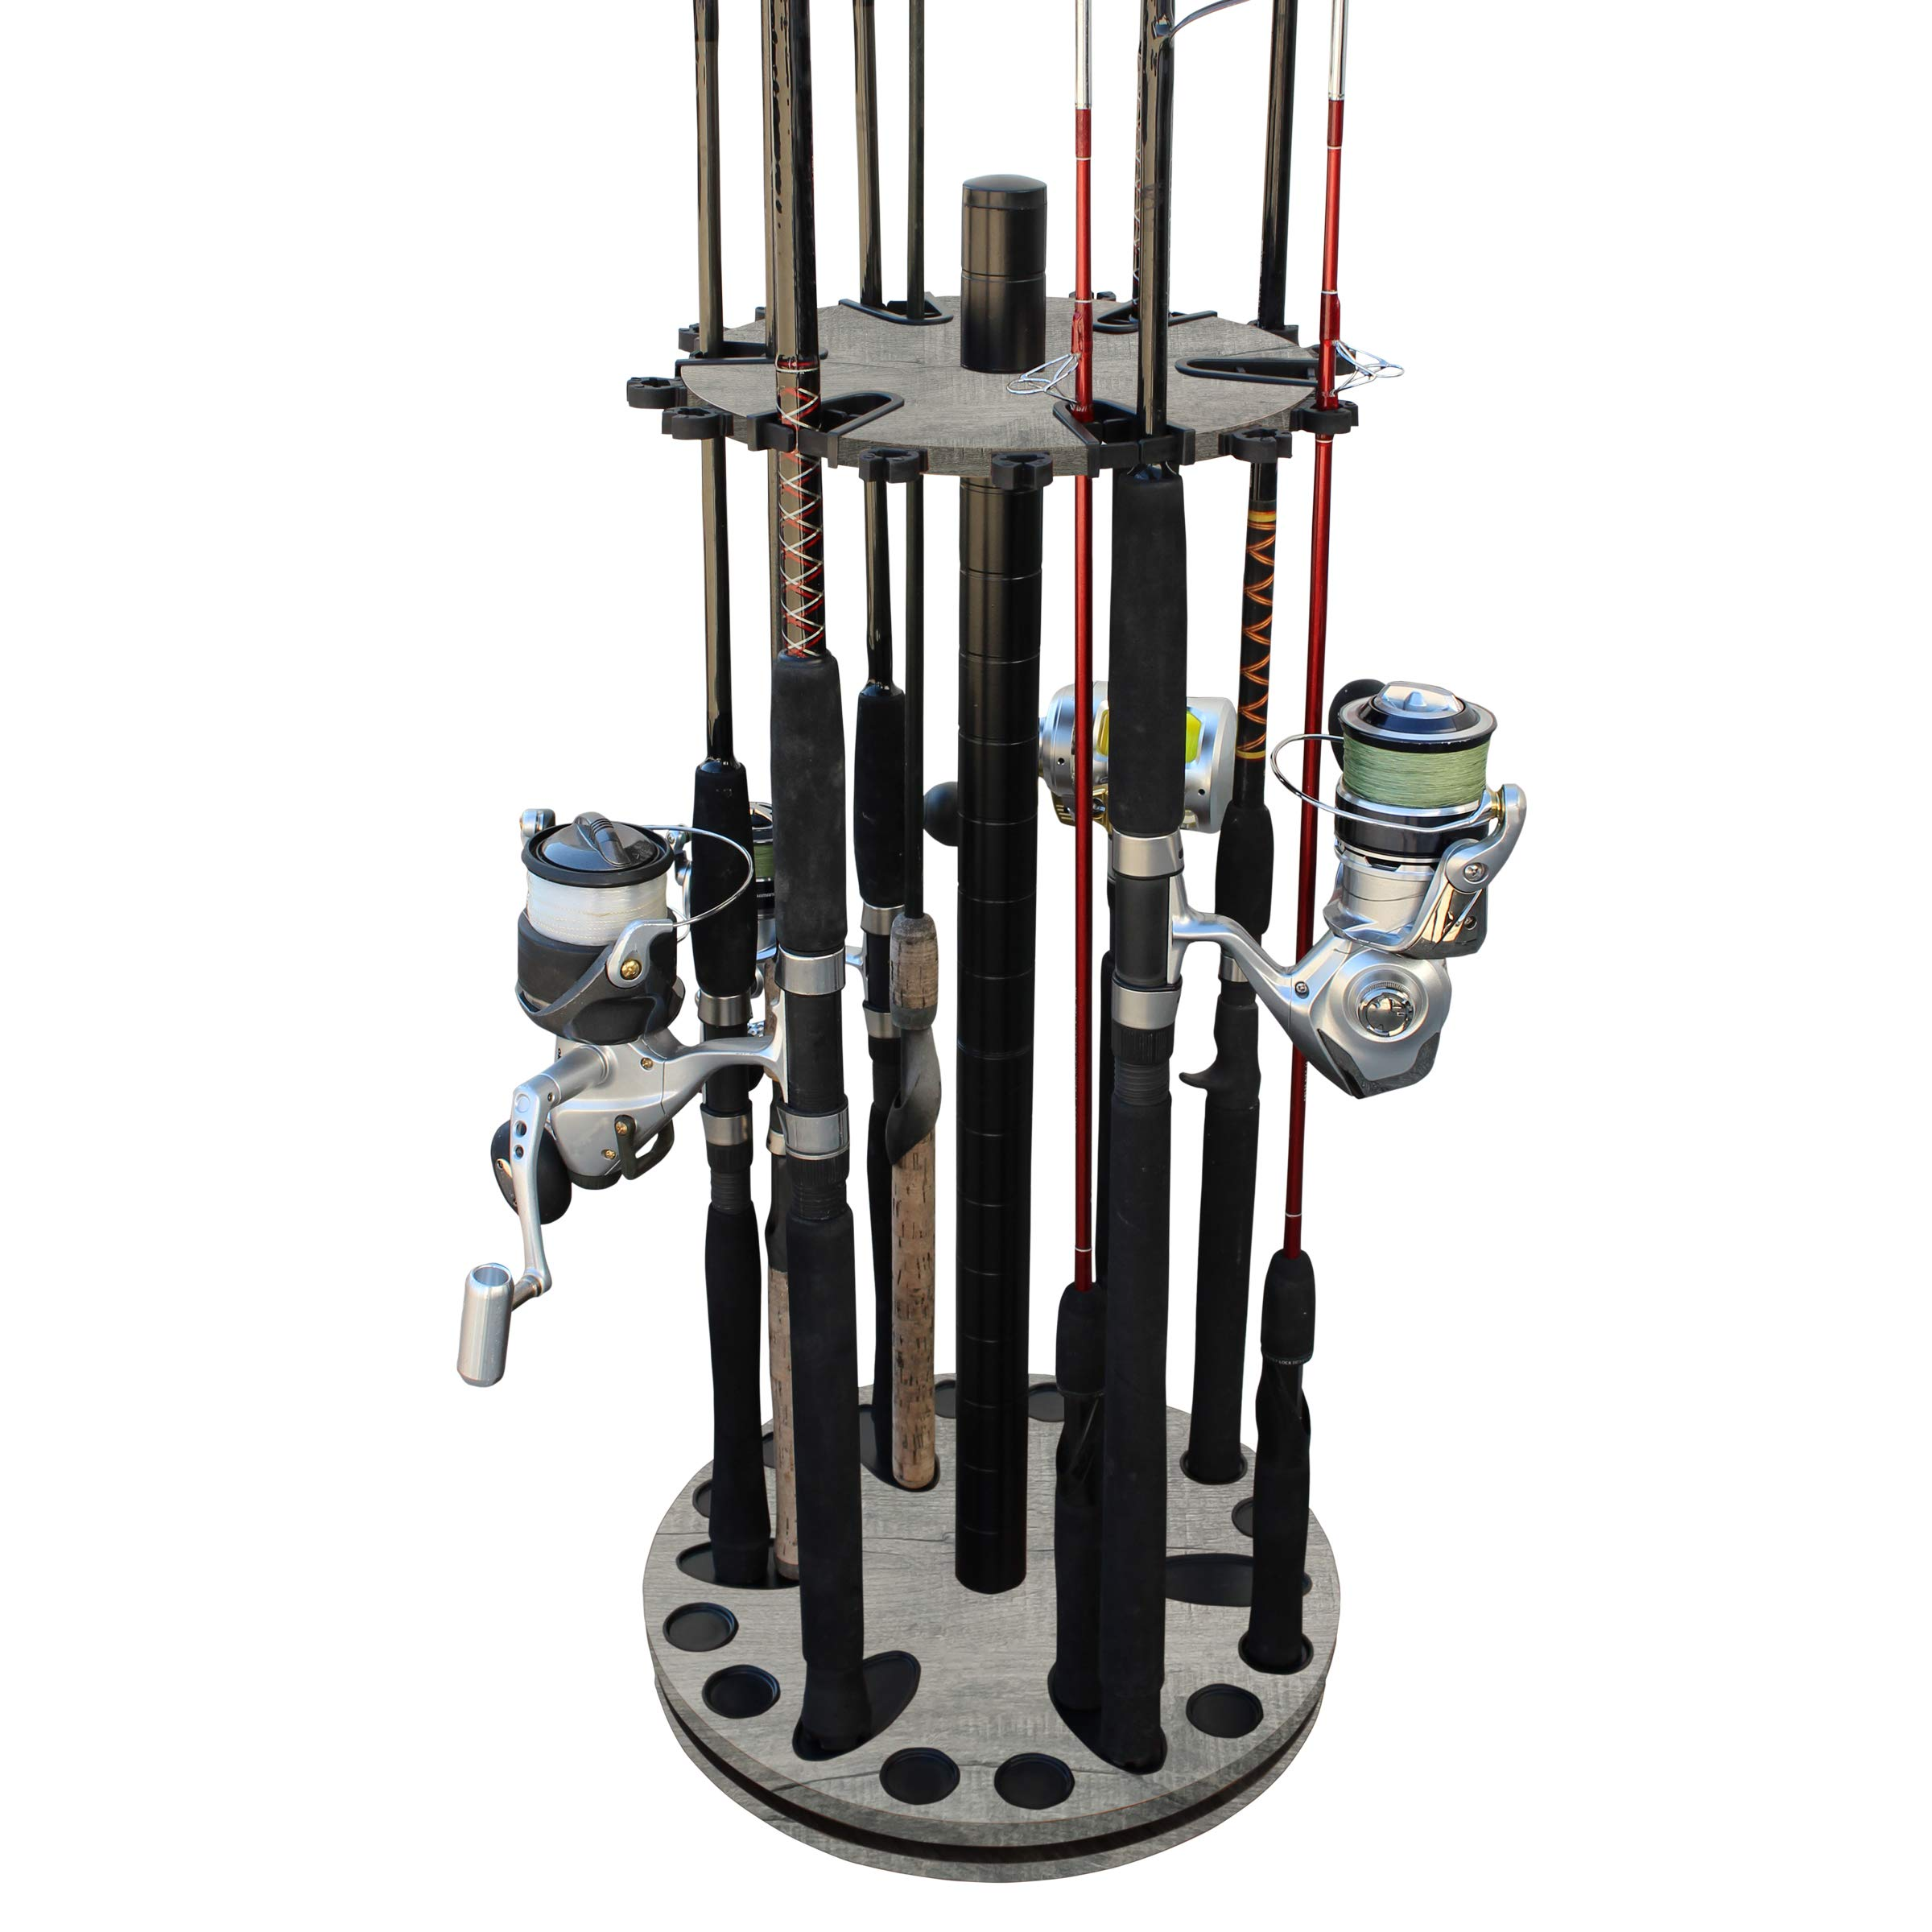 Rush Creek Creations 24 Round Spinning Fishing Rod/Pole Storage Floor Rack Barn Wood Finish - Features Heavy Duty Steel Post - No Tool Assembly